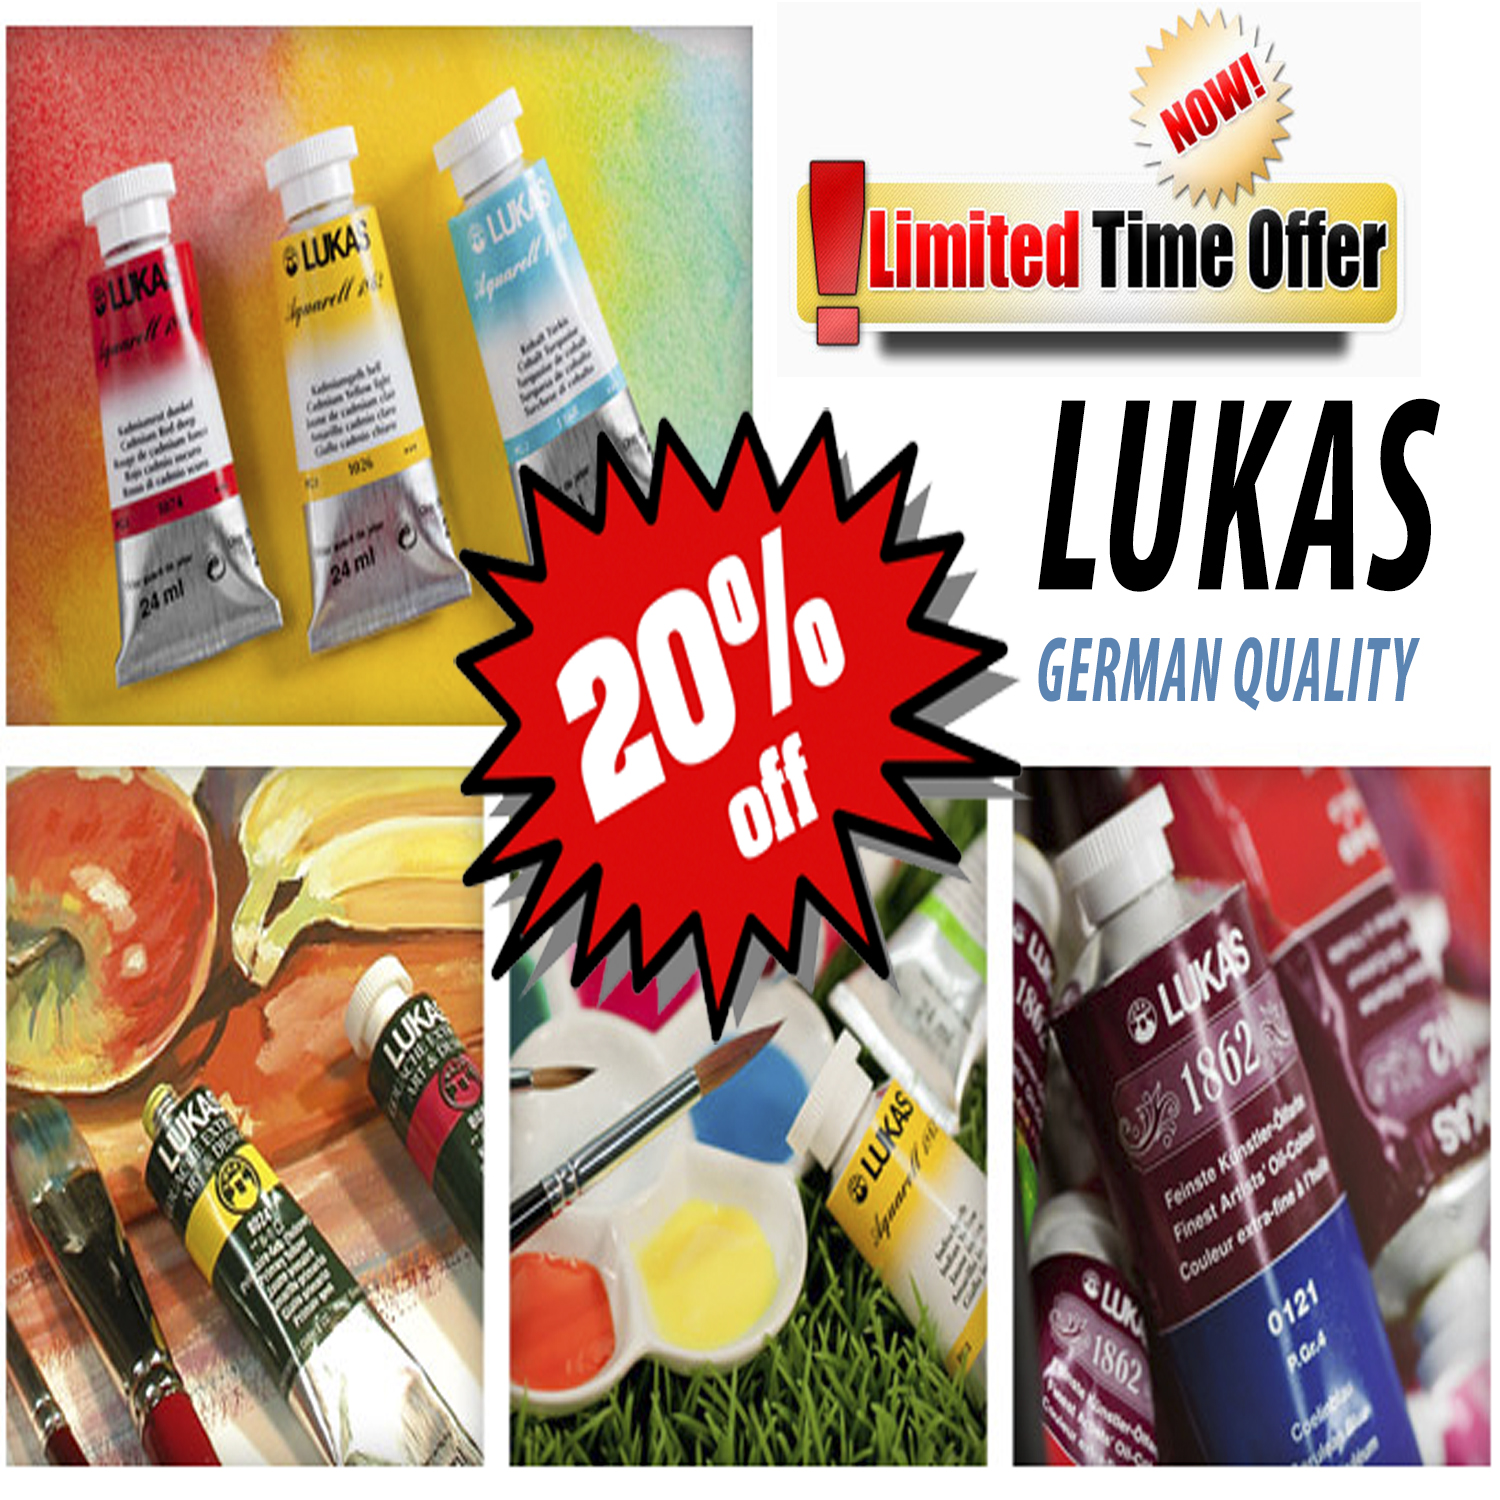 LUKAS OFFER